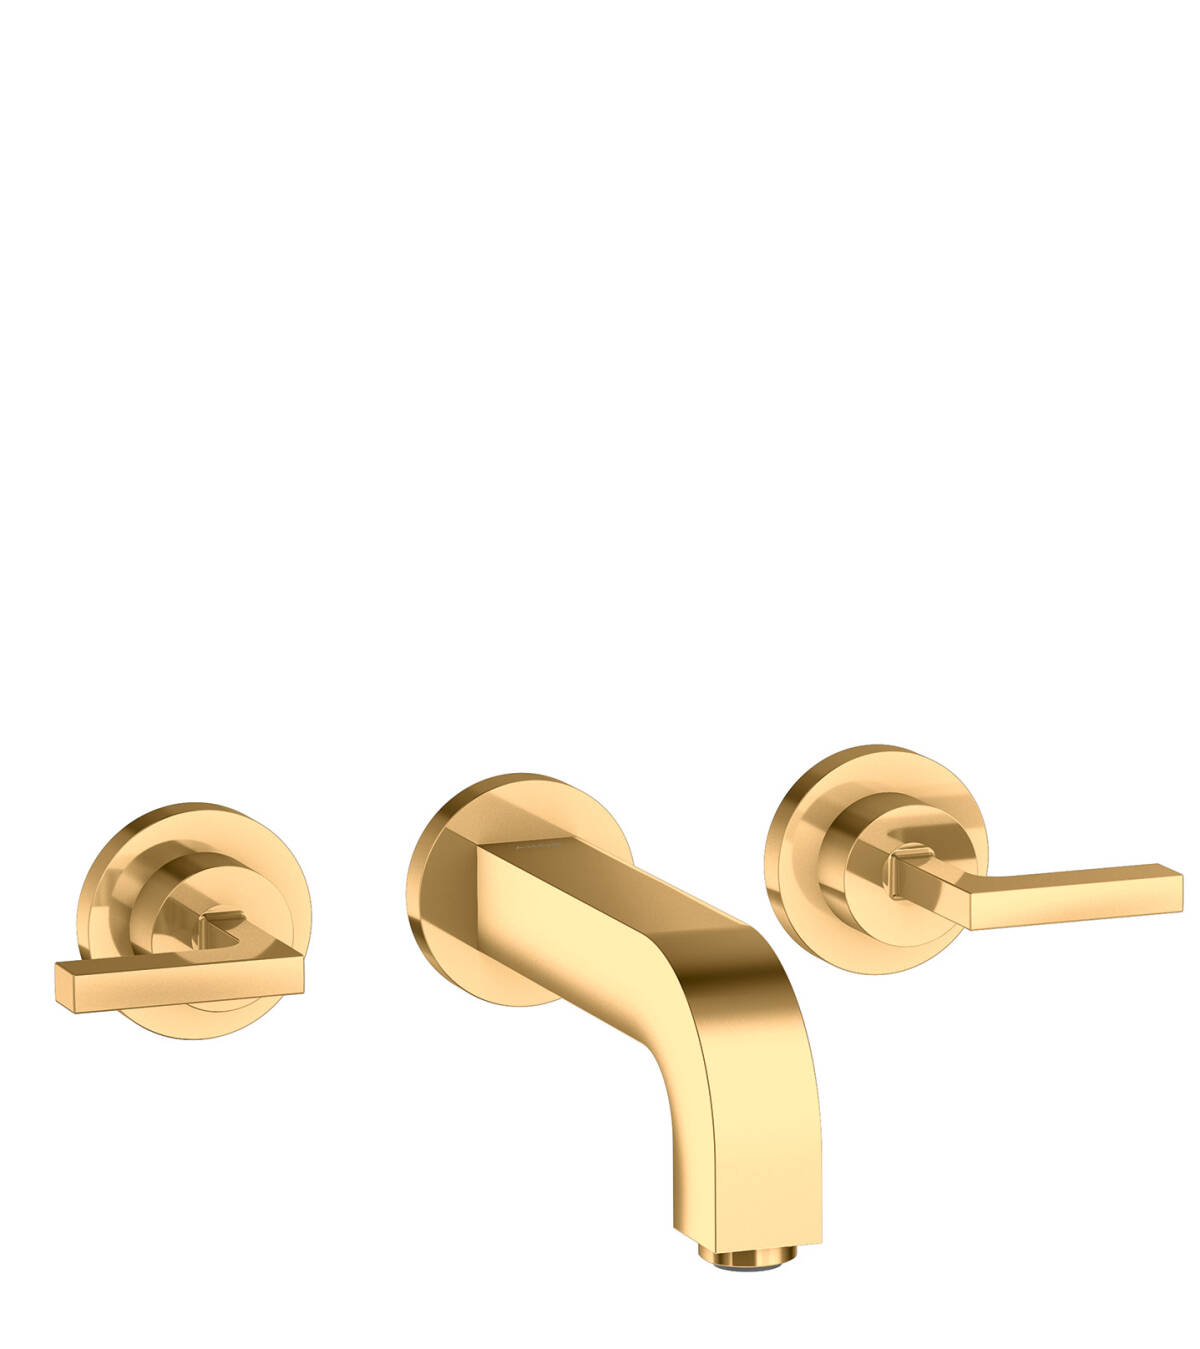 3-hole basin mixer for concealed installation with spout 162 mm, lever handles and escutcheons wall-mounted, Polished Brass, 39315930